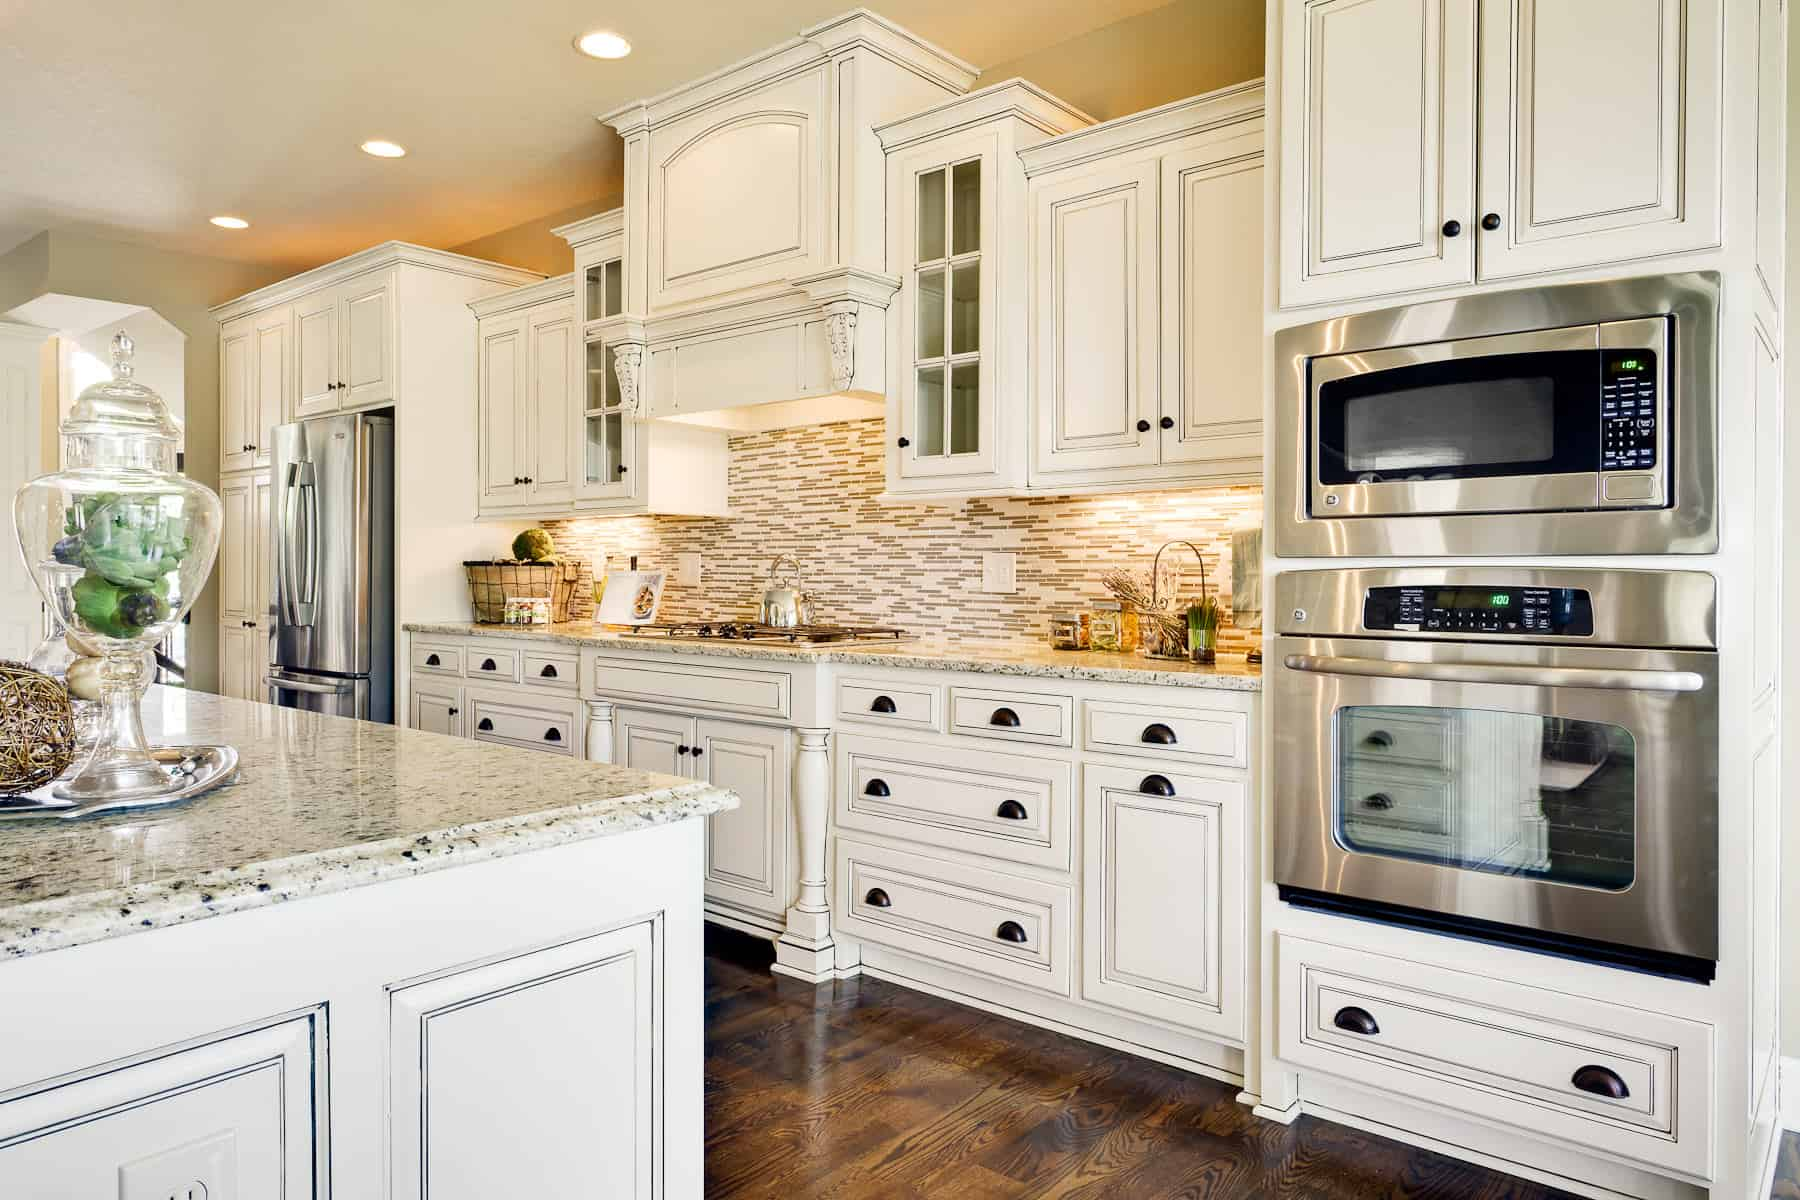 How Much Do Granite Countertops Cost? CounterTop Guides